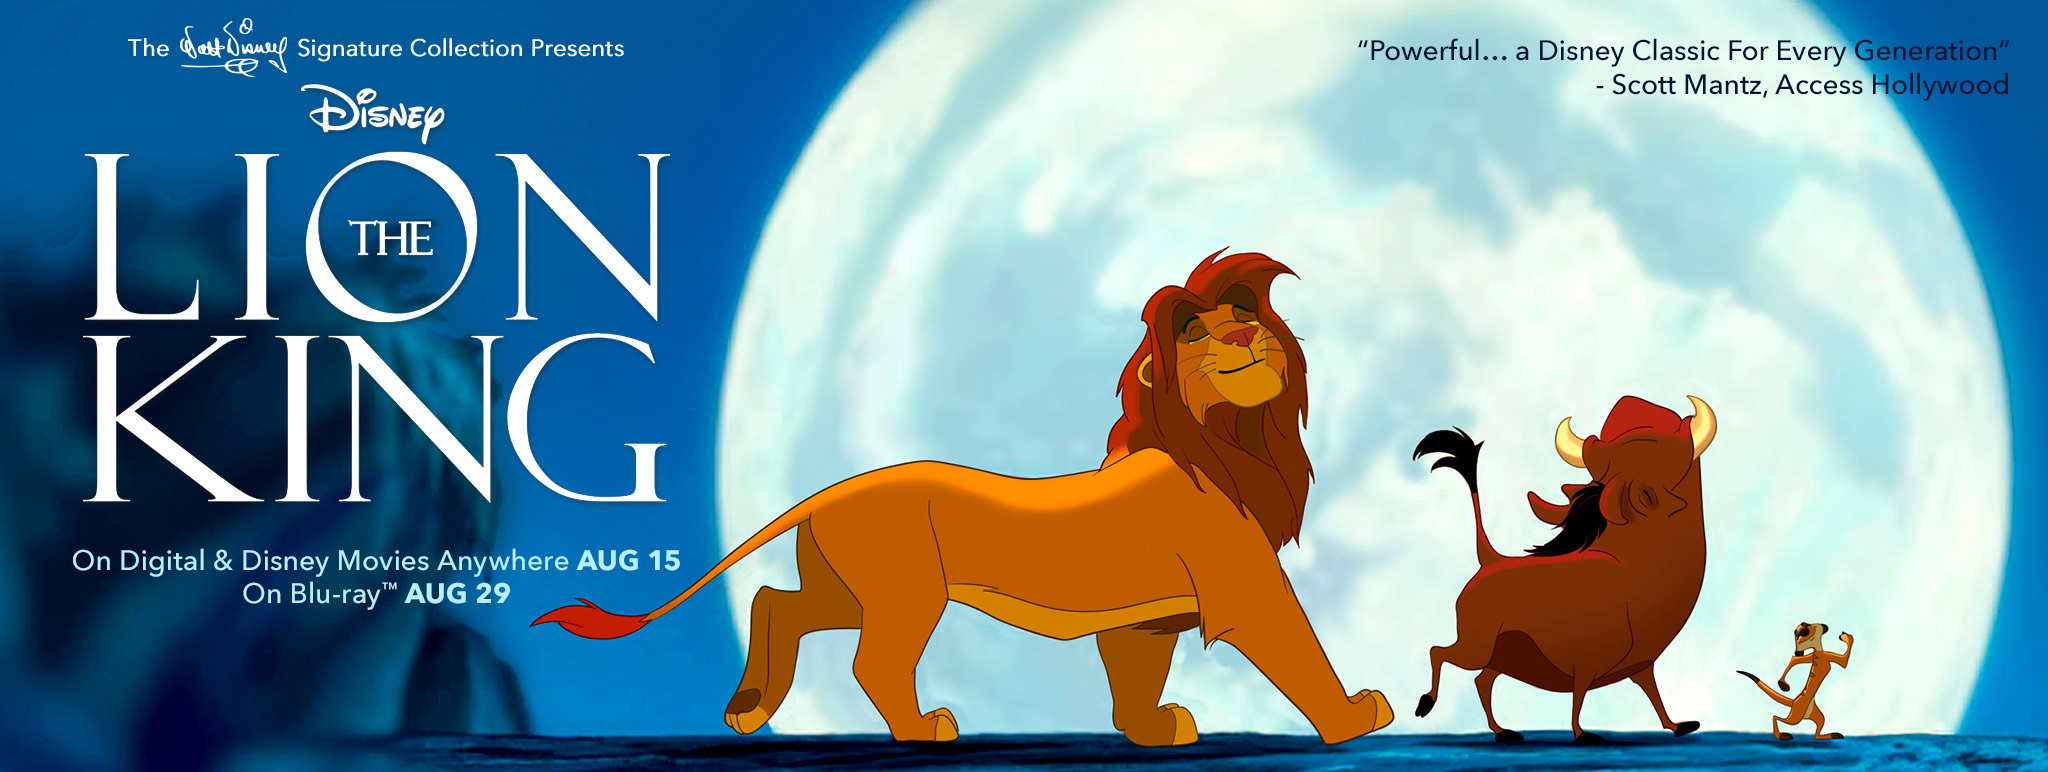 The Lion King on Digital & Disney Movies Anywhere August 15th